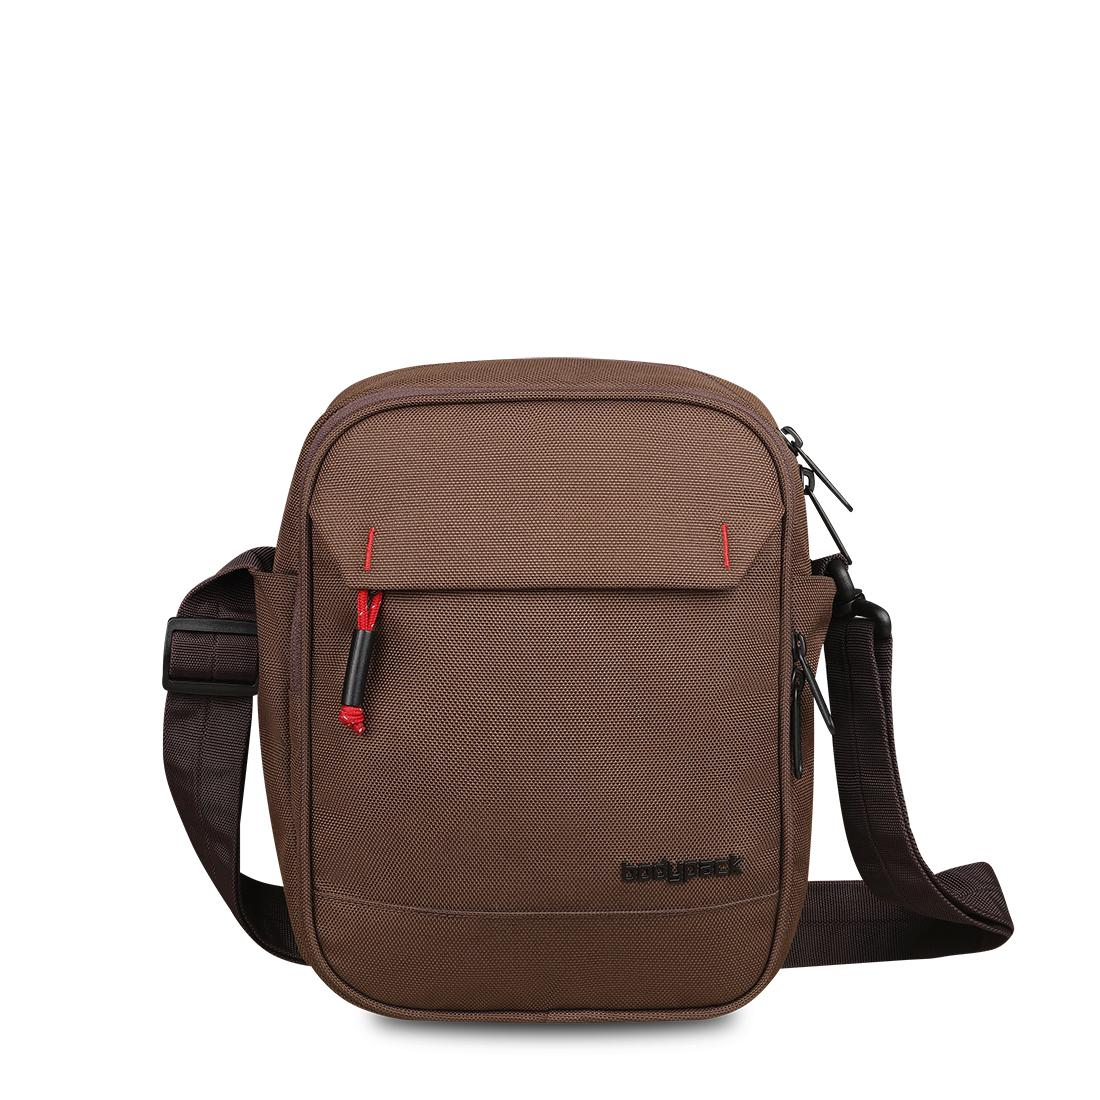 Bodypack Interchange 1.0 Shoulder Bag - Brown